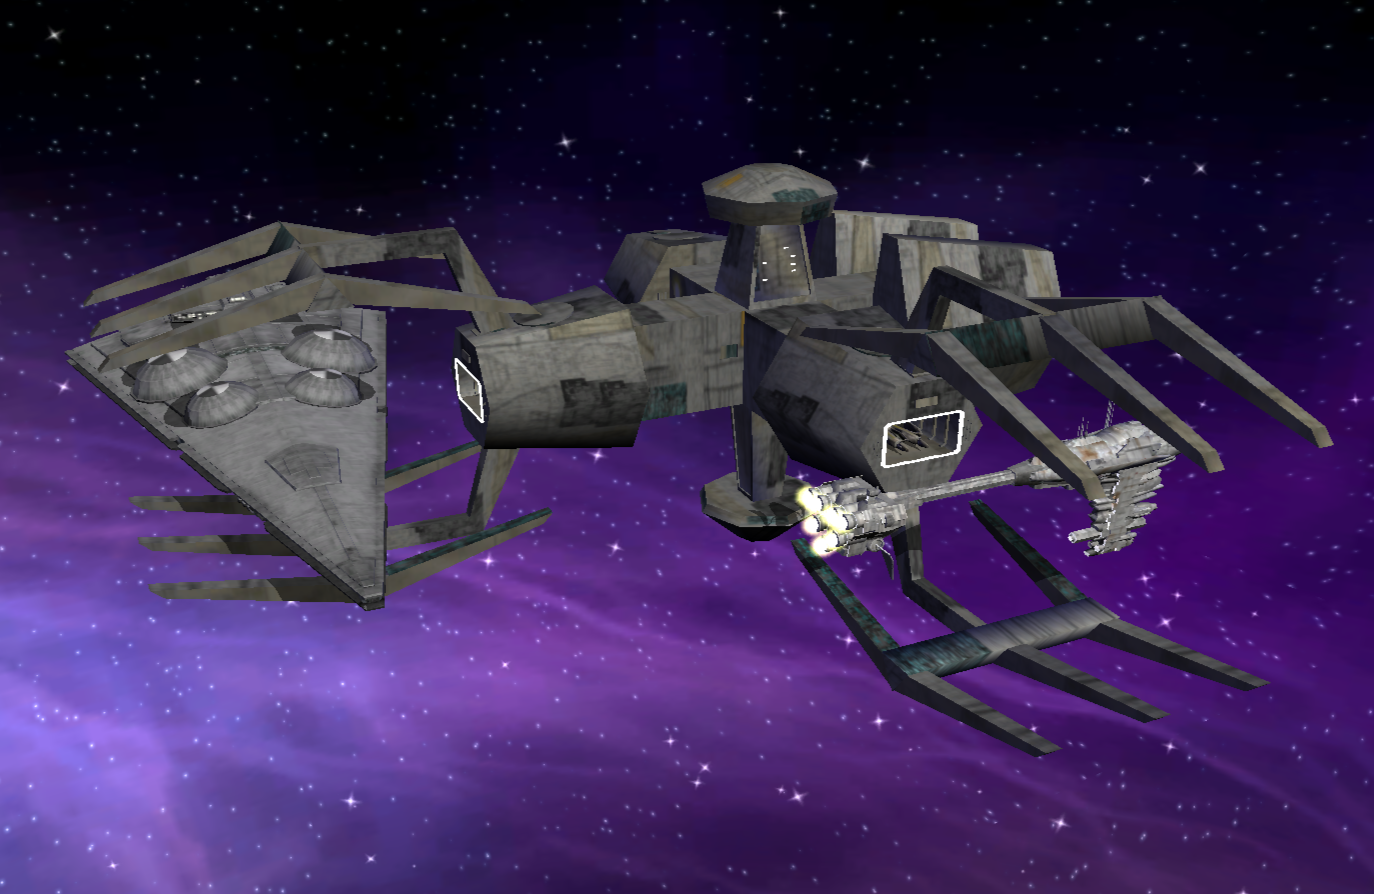 Standard frigate shipyard with an Immobilizer and nebulon docked.